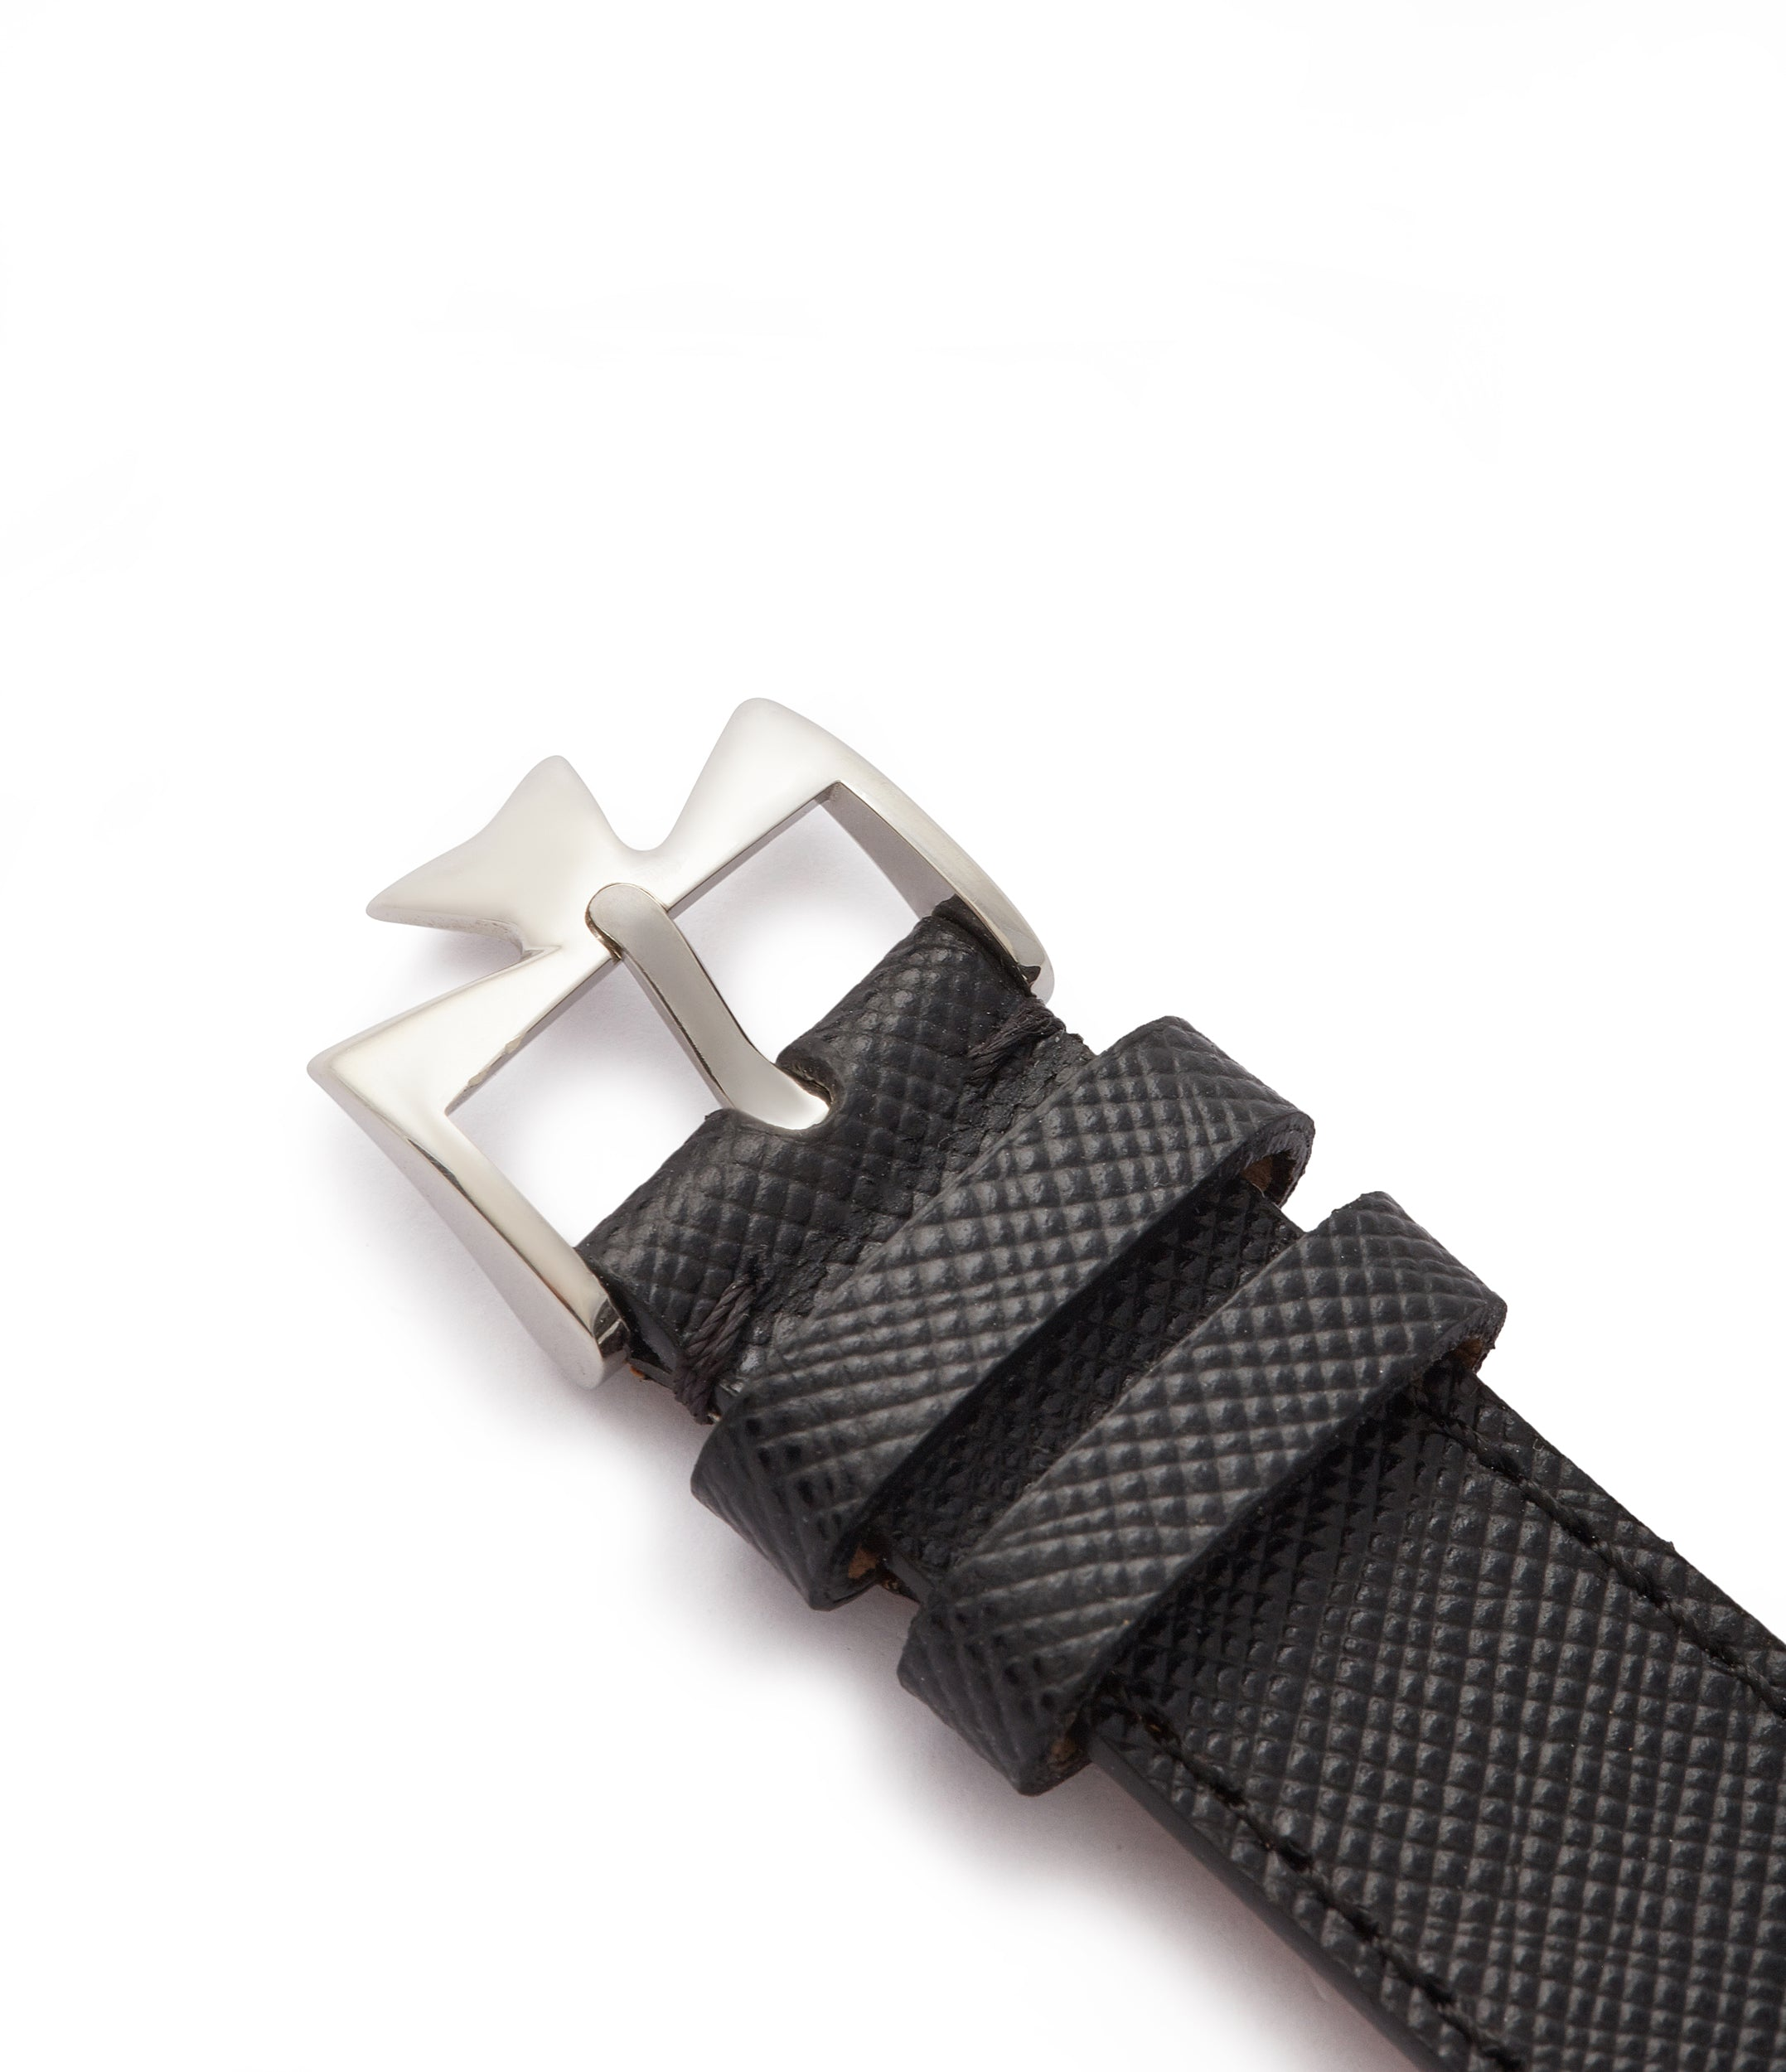 luxury watch strap black saffiano leather watch strap 20mm Milano for sale order online at A Collected Man London